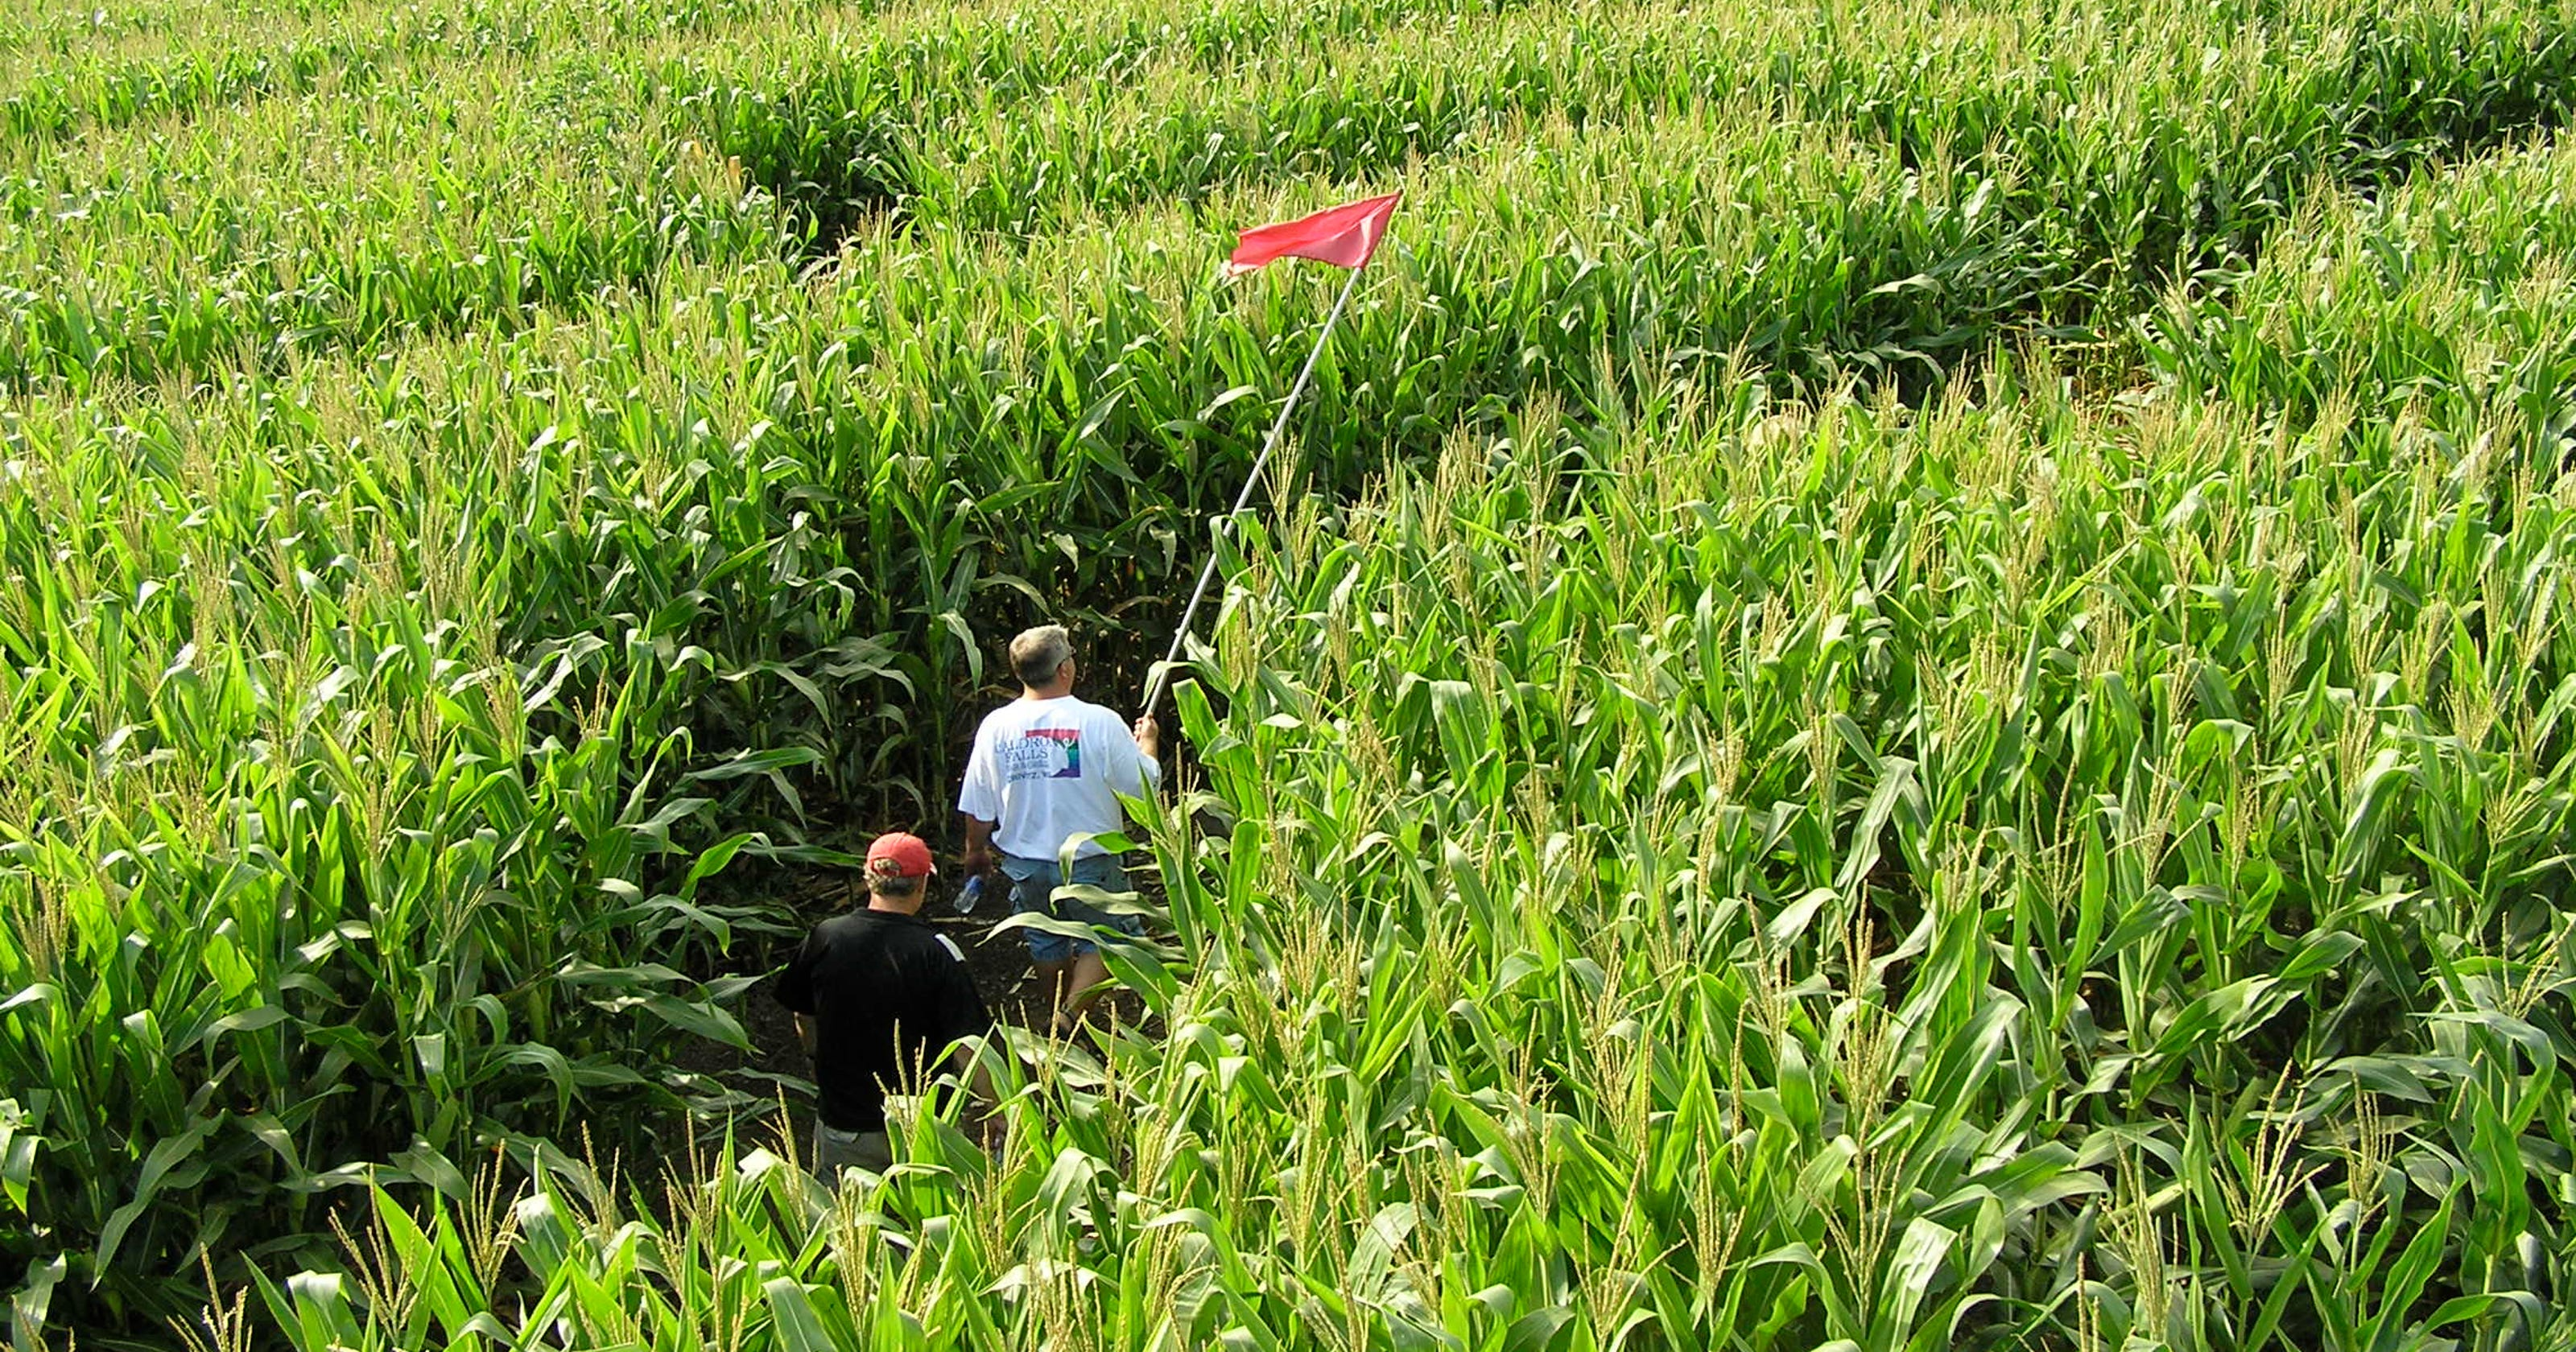 3 year old lost in corn maze family didn t notice until next day